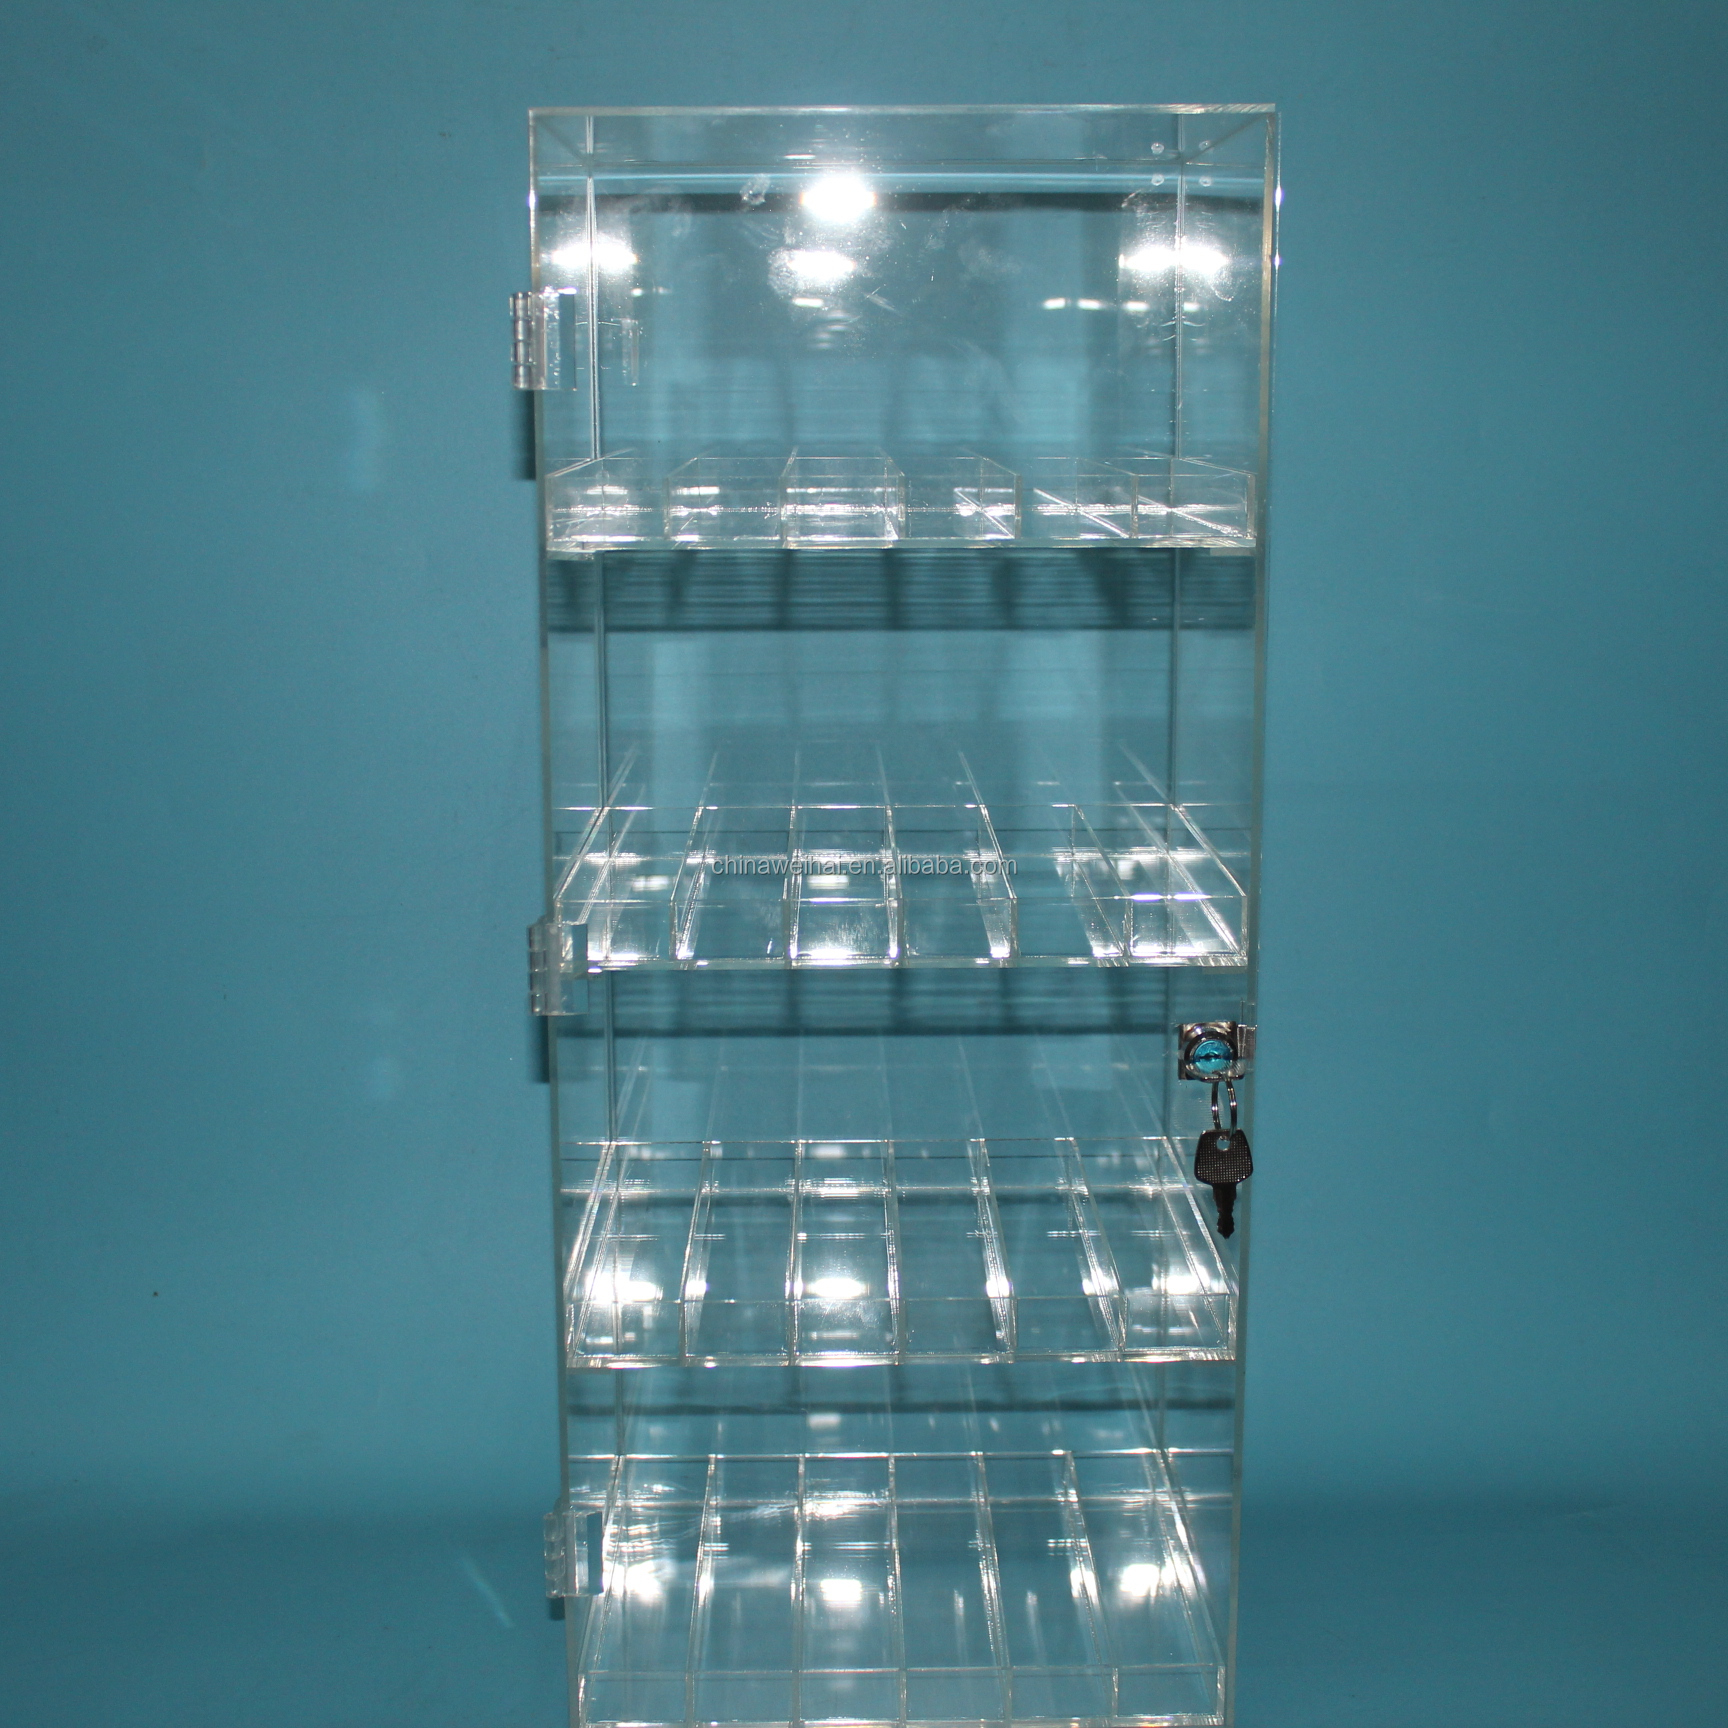 LOGO printed  Acrylic Moroccan Oil Display Stand